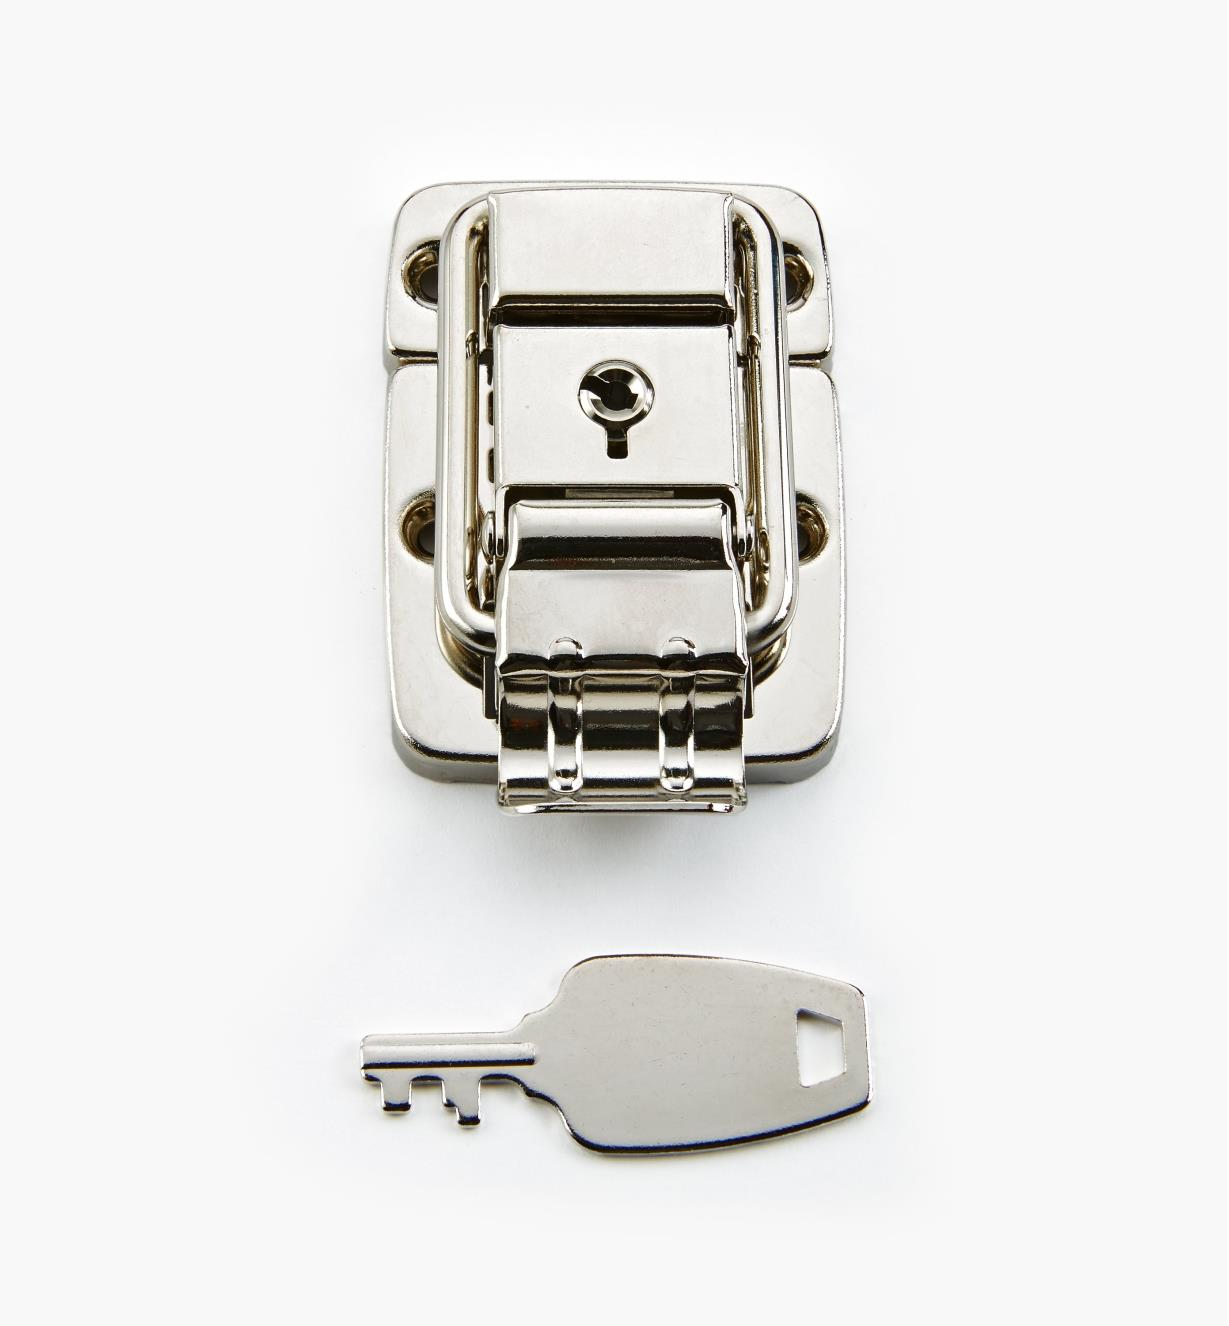 00S5560 - Nickel-Plated Locking Latch